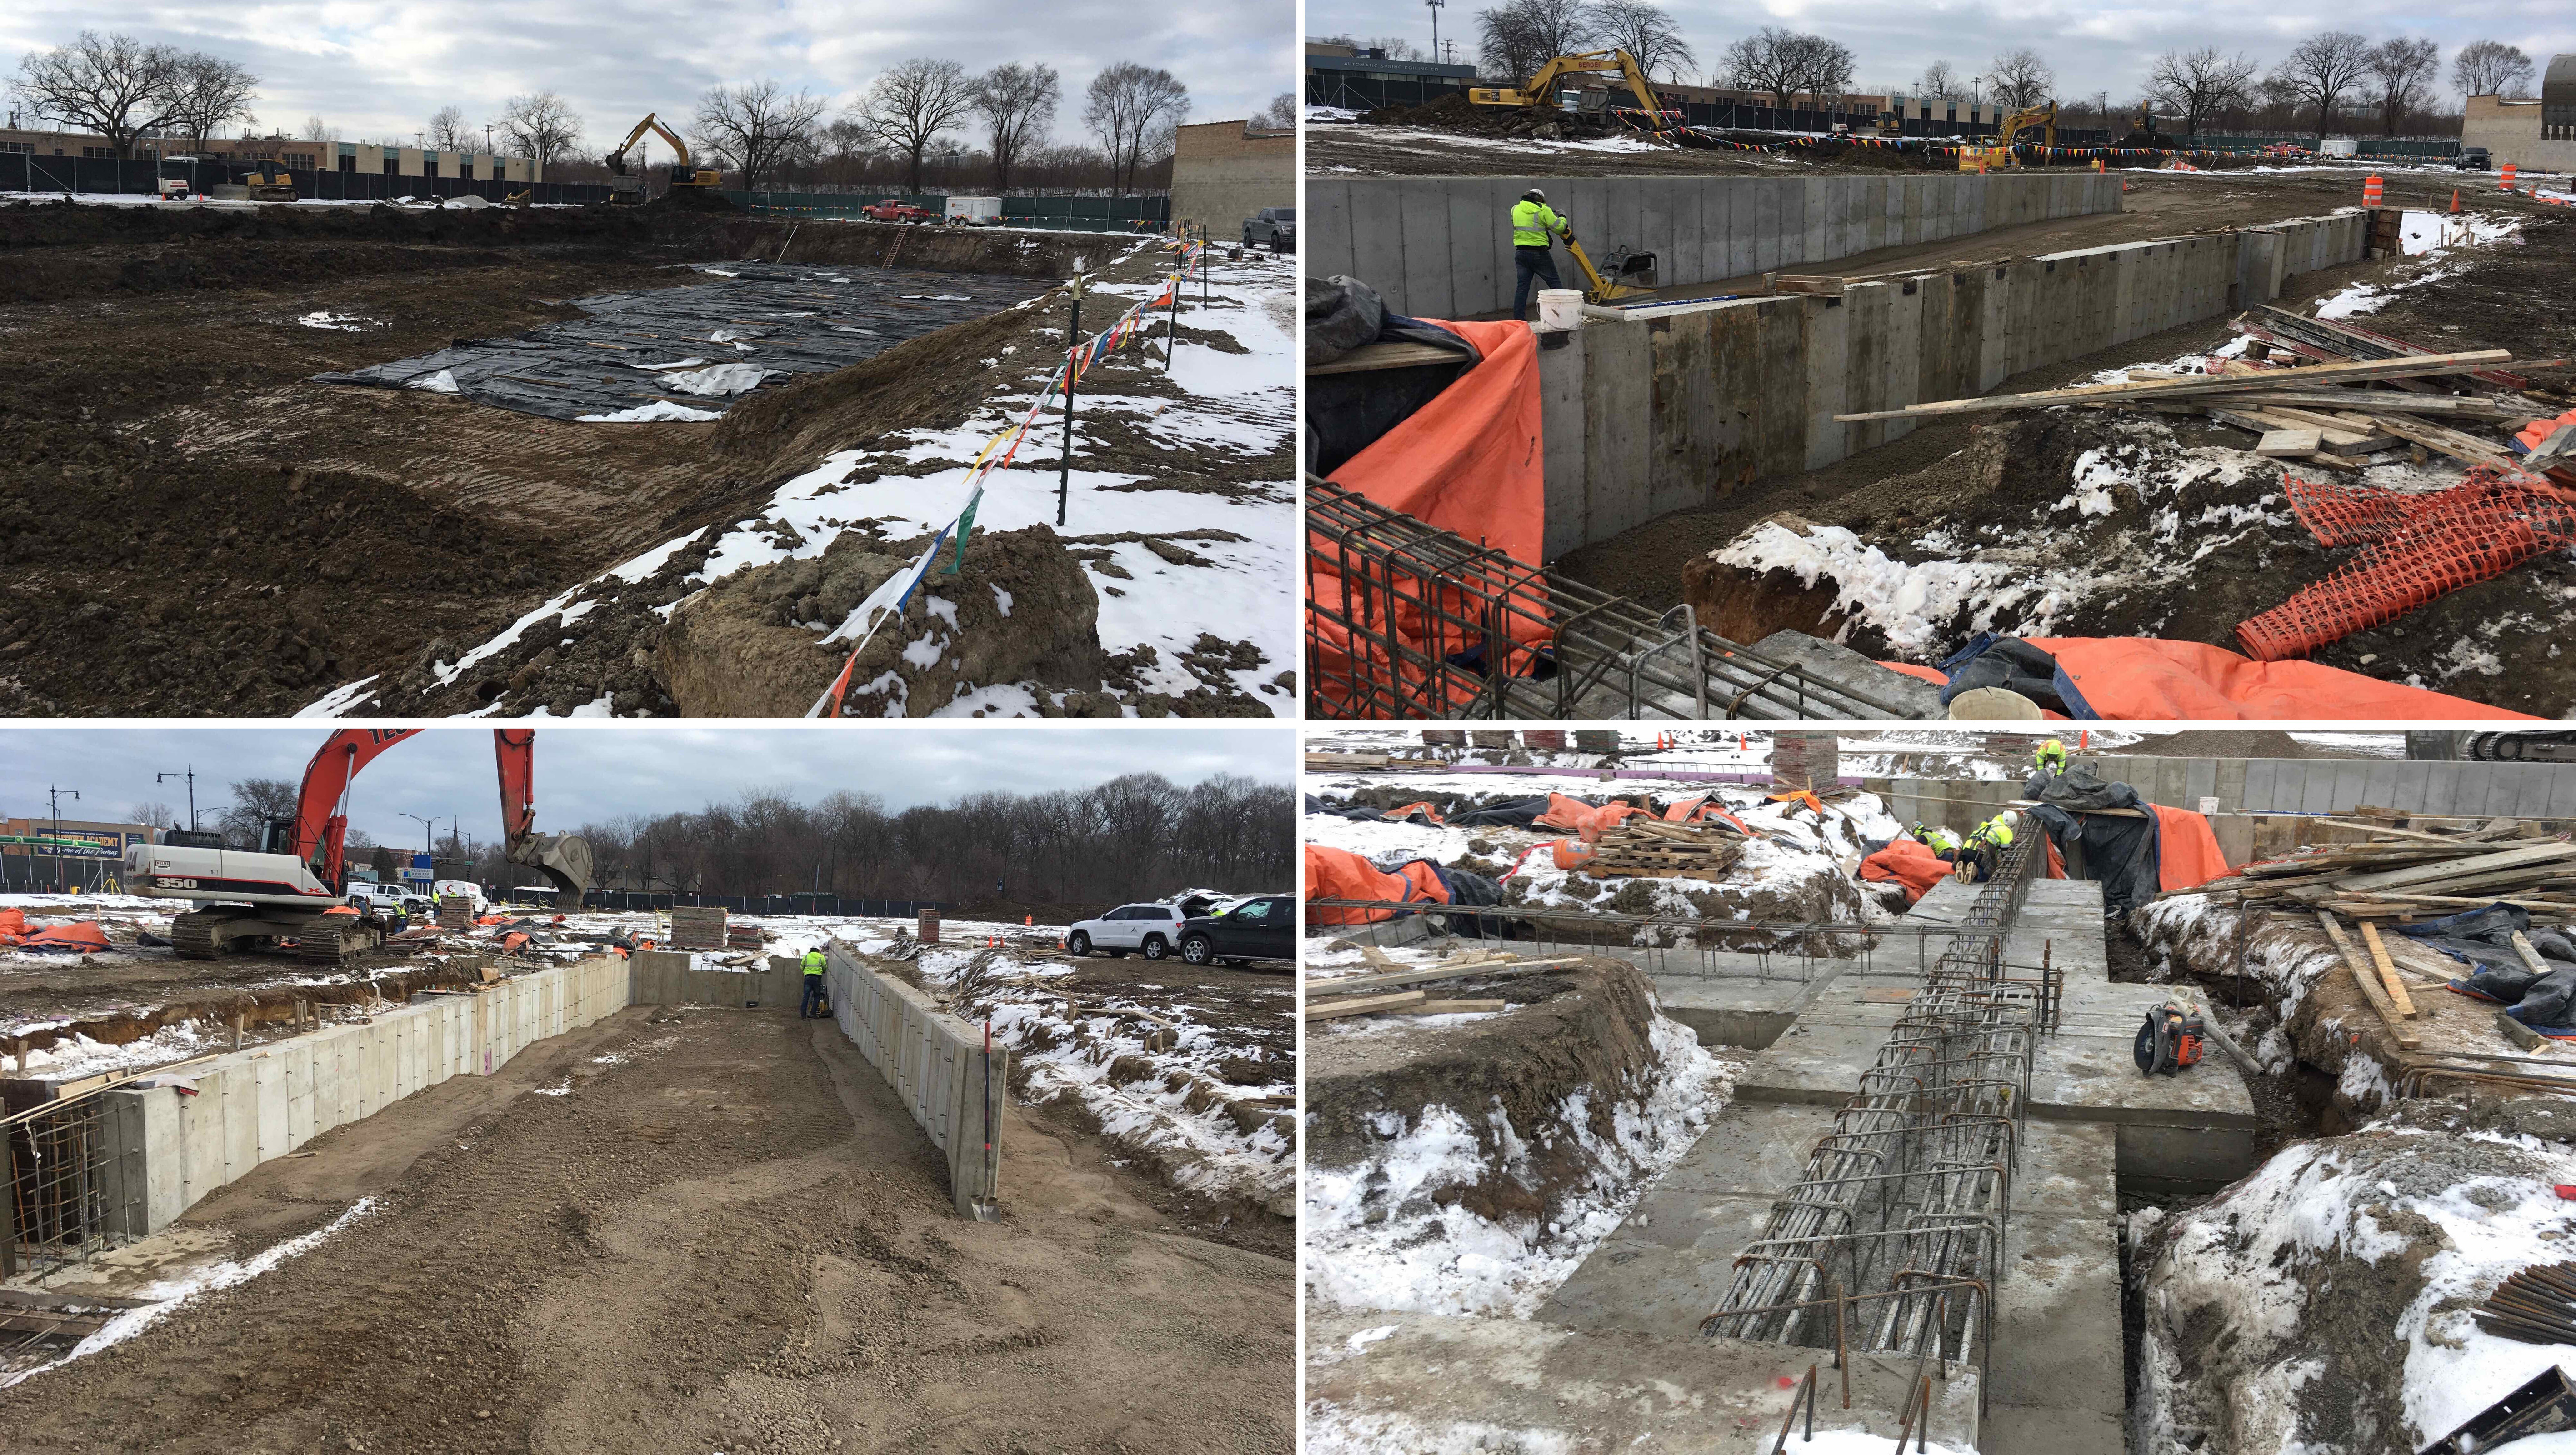 Peoples-Gas-North-Shop-January-2019-Construction-Progress-Update-Collage.jpg?mtime=20190121162454#asset:4472